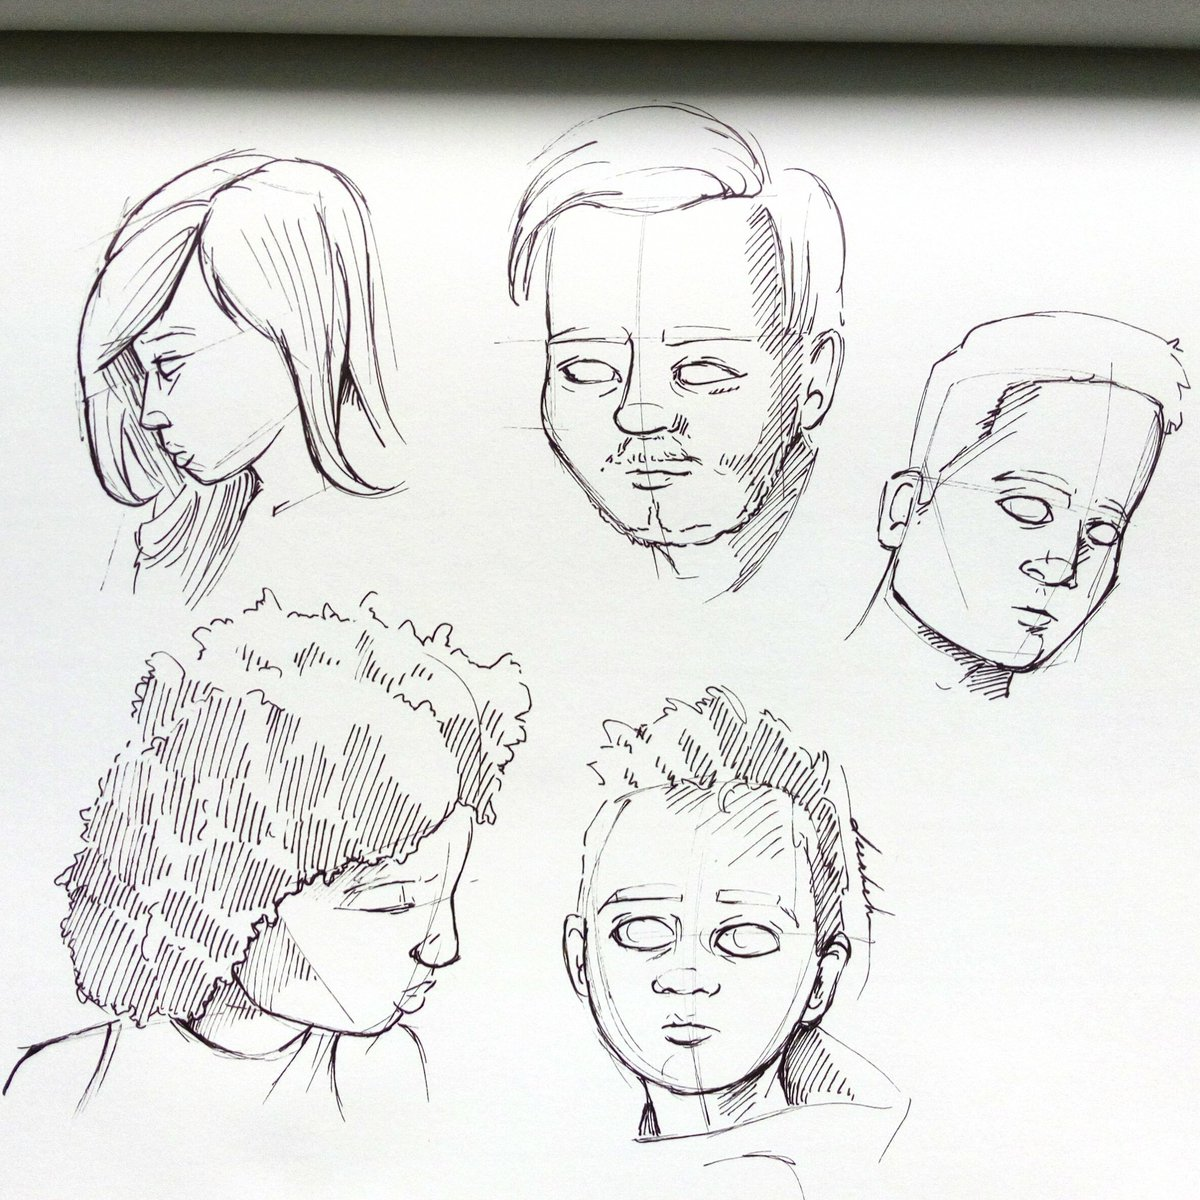 Faces, one stroke #dailyart #dailyillustration #faces #facestudy #portraits #humans #people #humankind https://t.co/mvhMCvjF8P